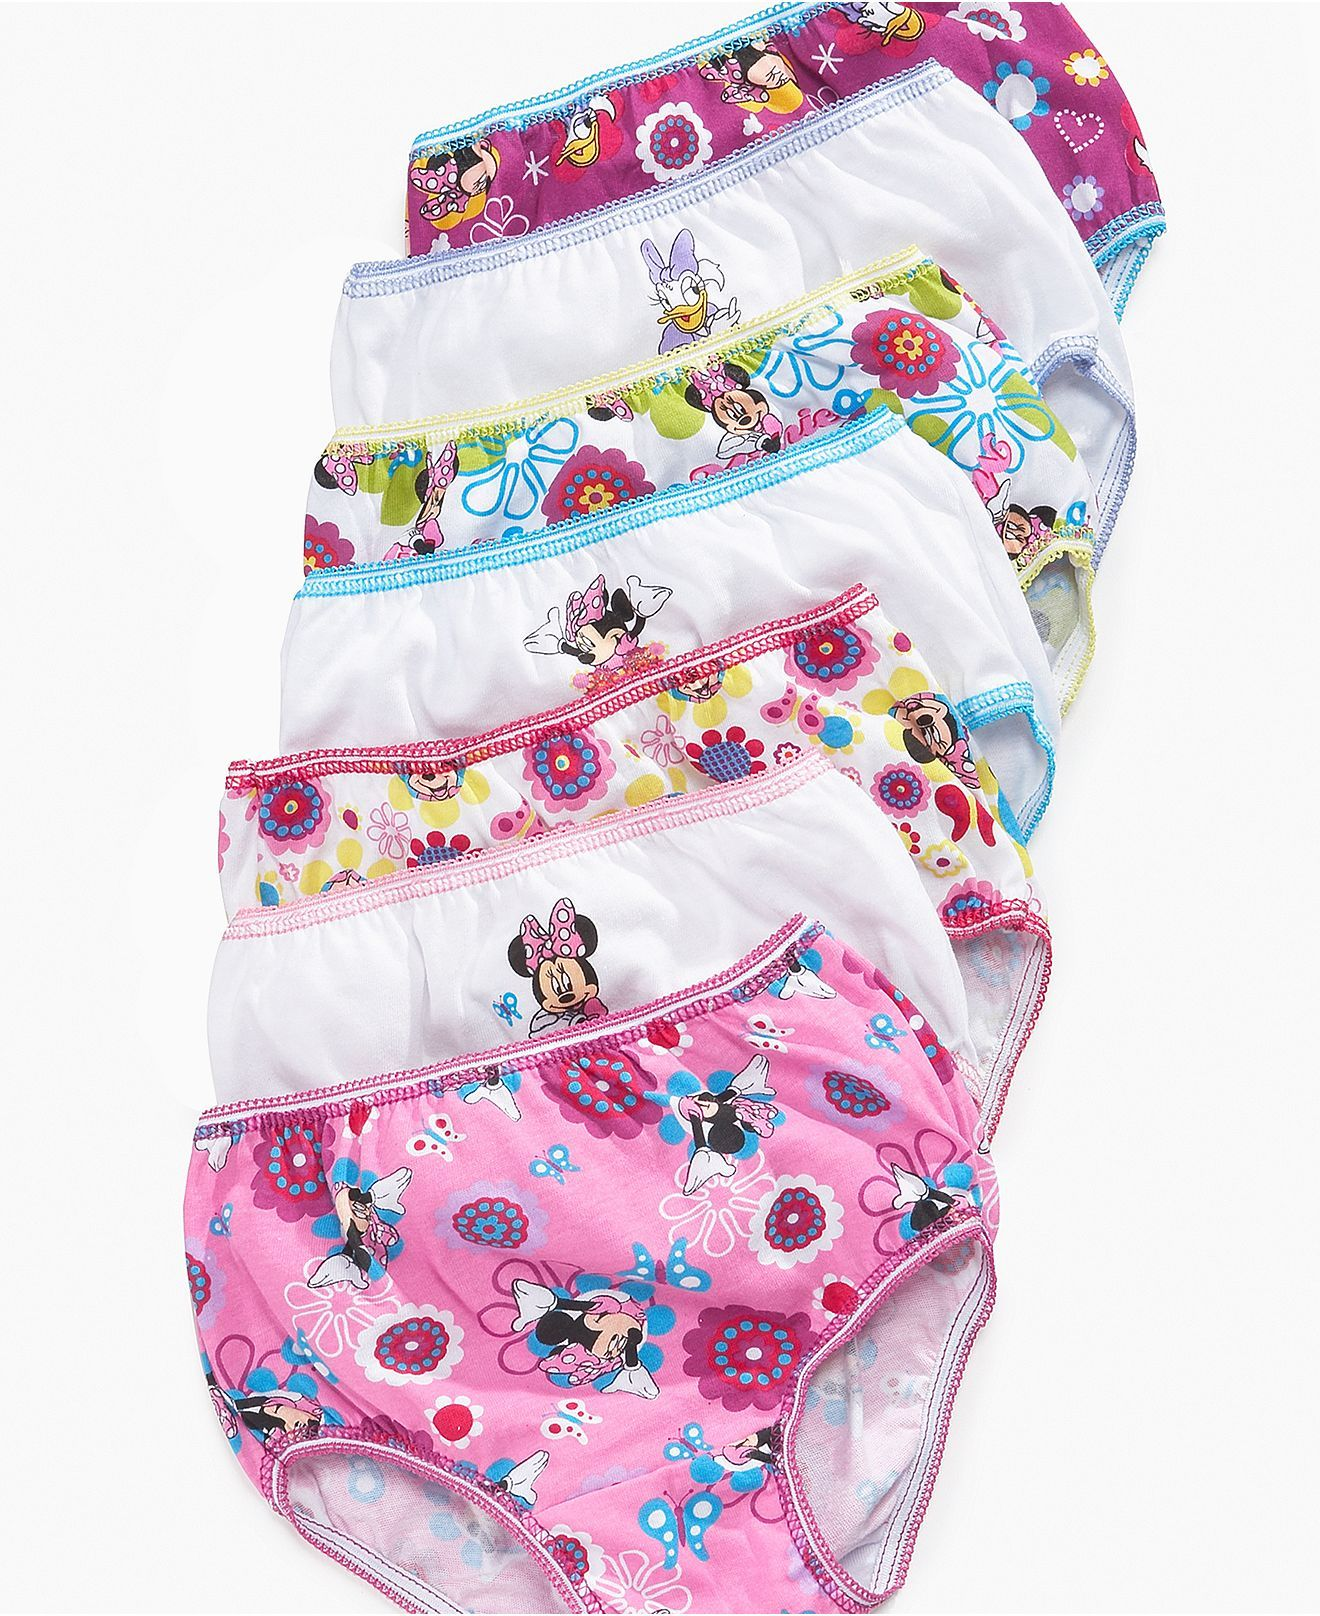 Kids Boys Girls Paw Patrol Frozen Spiderman Briefs Underpants Knickers 3Pack Set